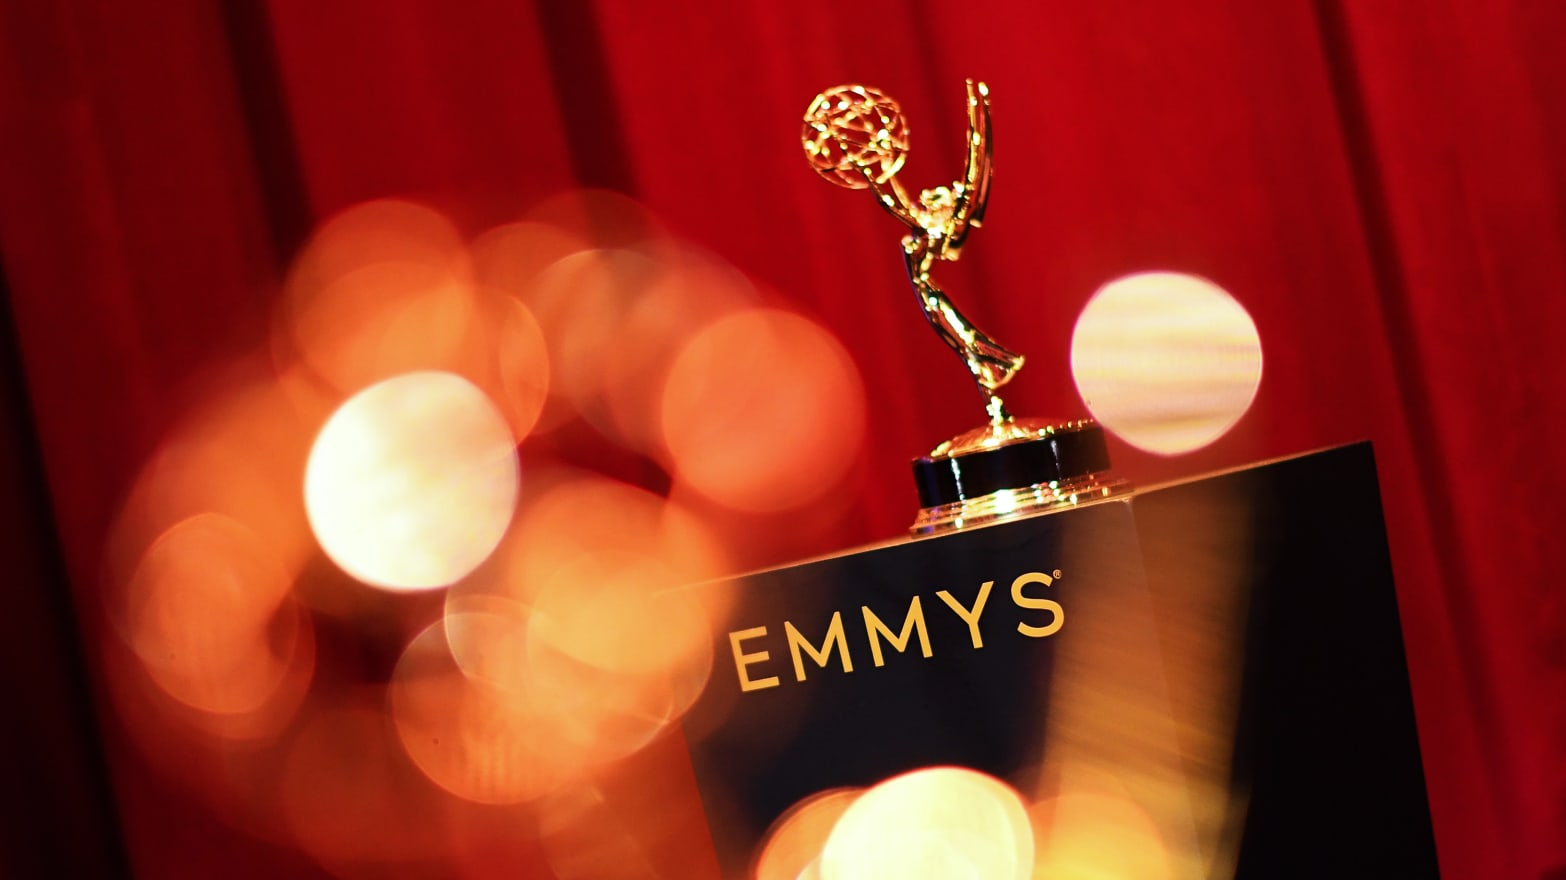 Emmys 2020 — Who Will and Should Be Nominated